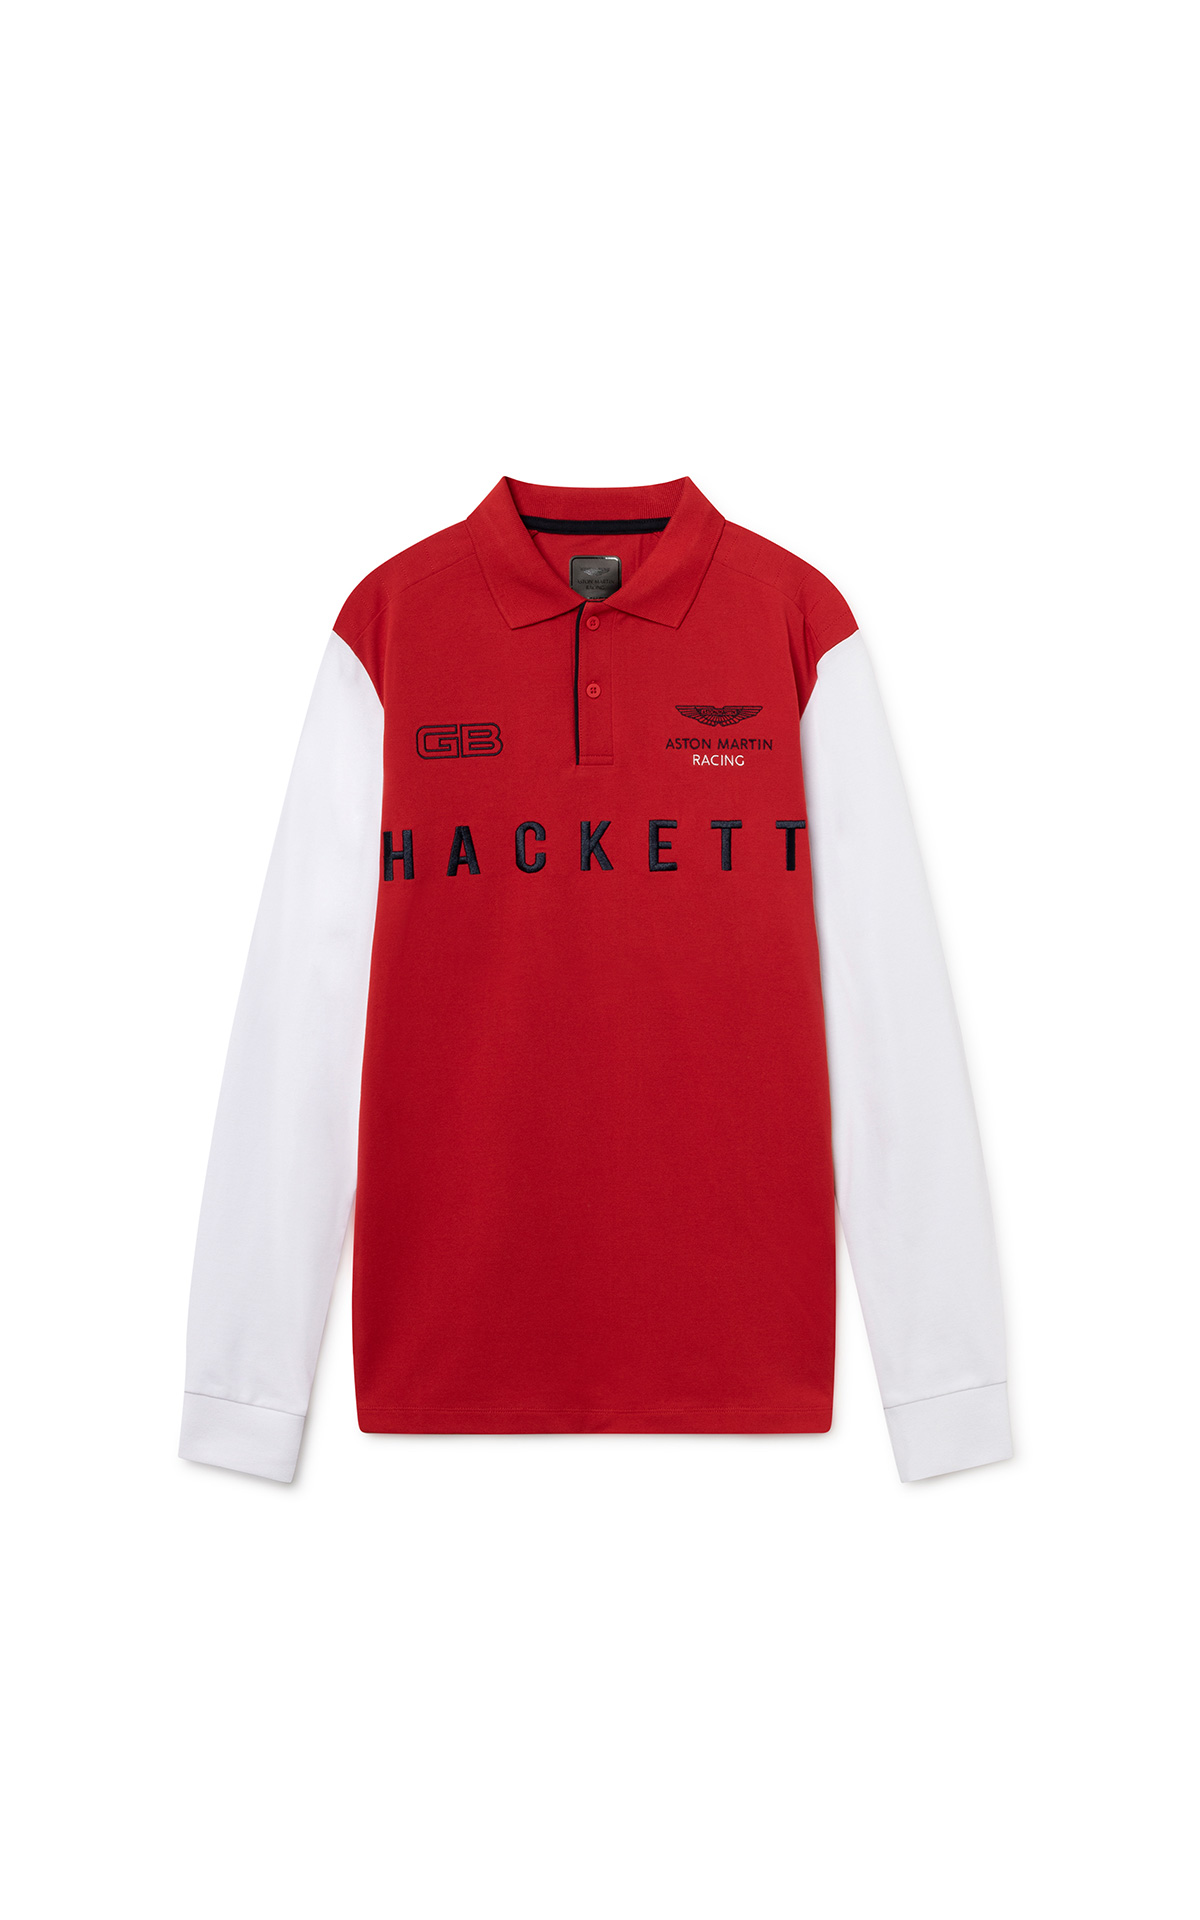 Hackett London top at The Bicester Village Shopping Collection